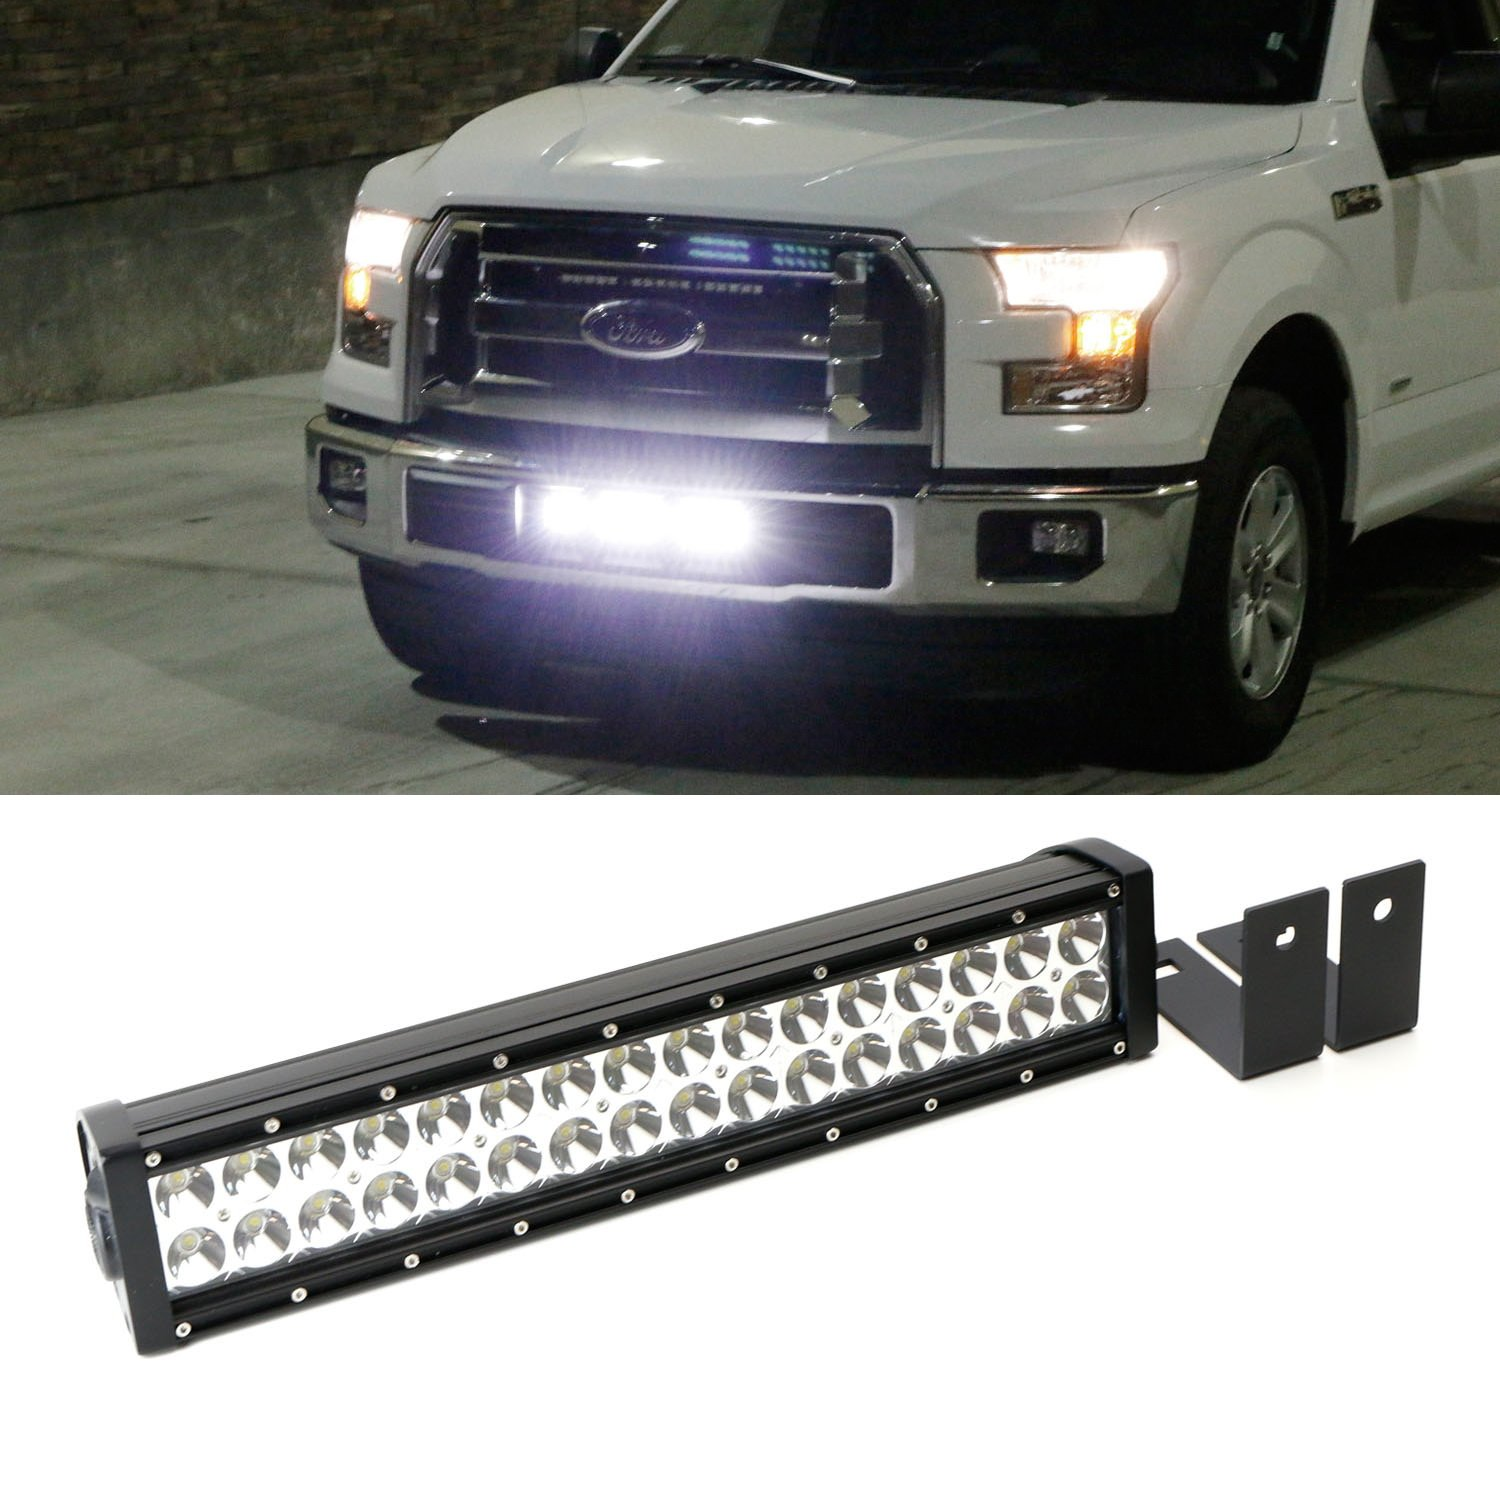 Ijdmtoy Complete High Power Led Light Bar W Lower 1949 Chevy Truck Fuse Box Bumper Insert Area Mounting Brackets And Wiring Switch For 2015 Up Ford F 150 Xlt